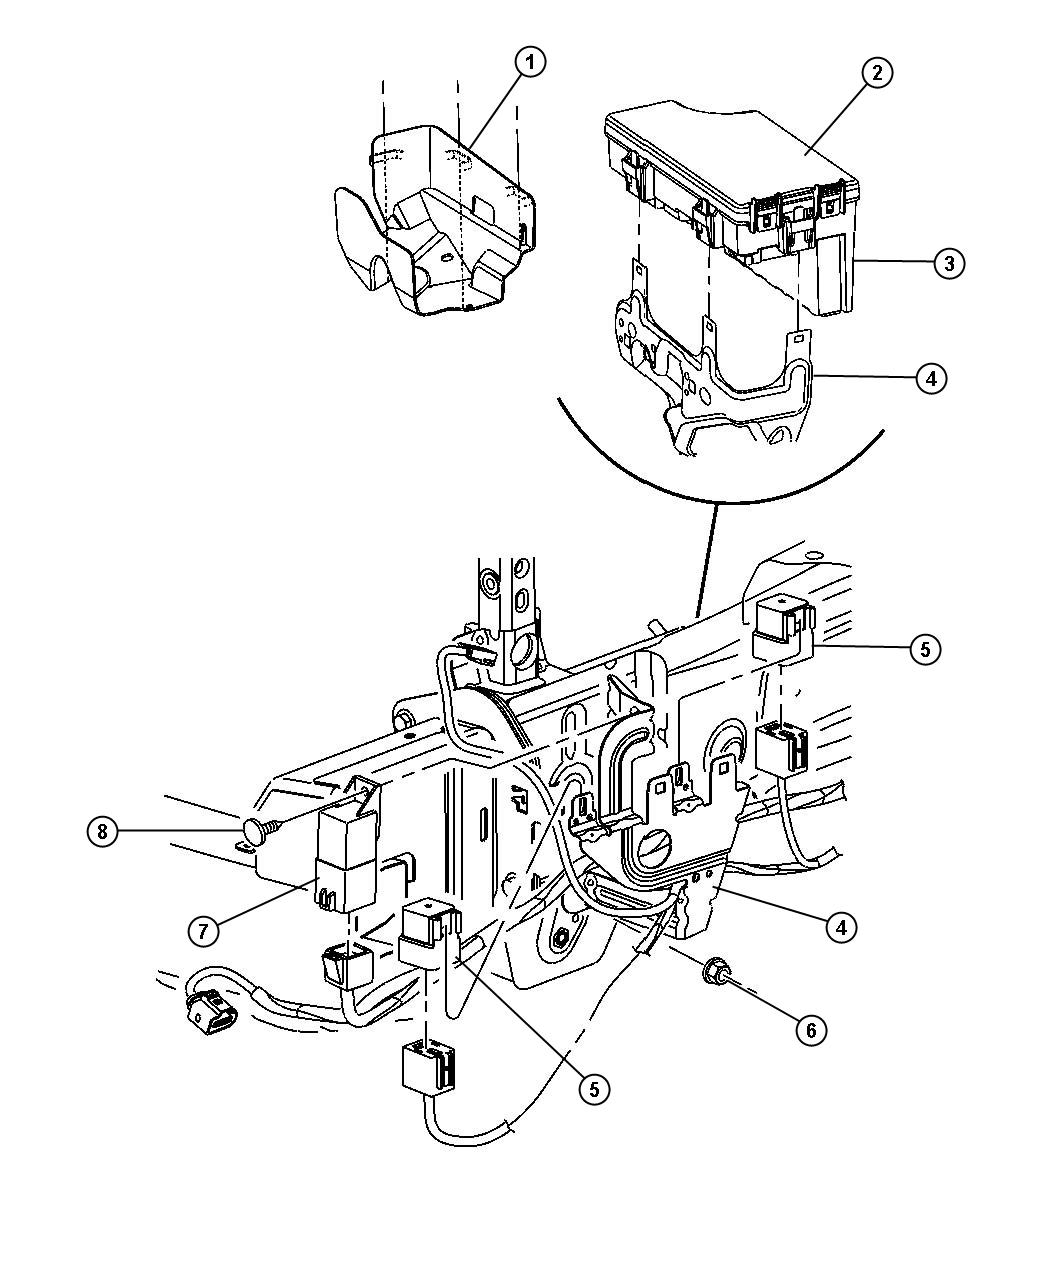 dorman ignition switch wiring diagram  dorman  free engine